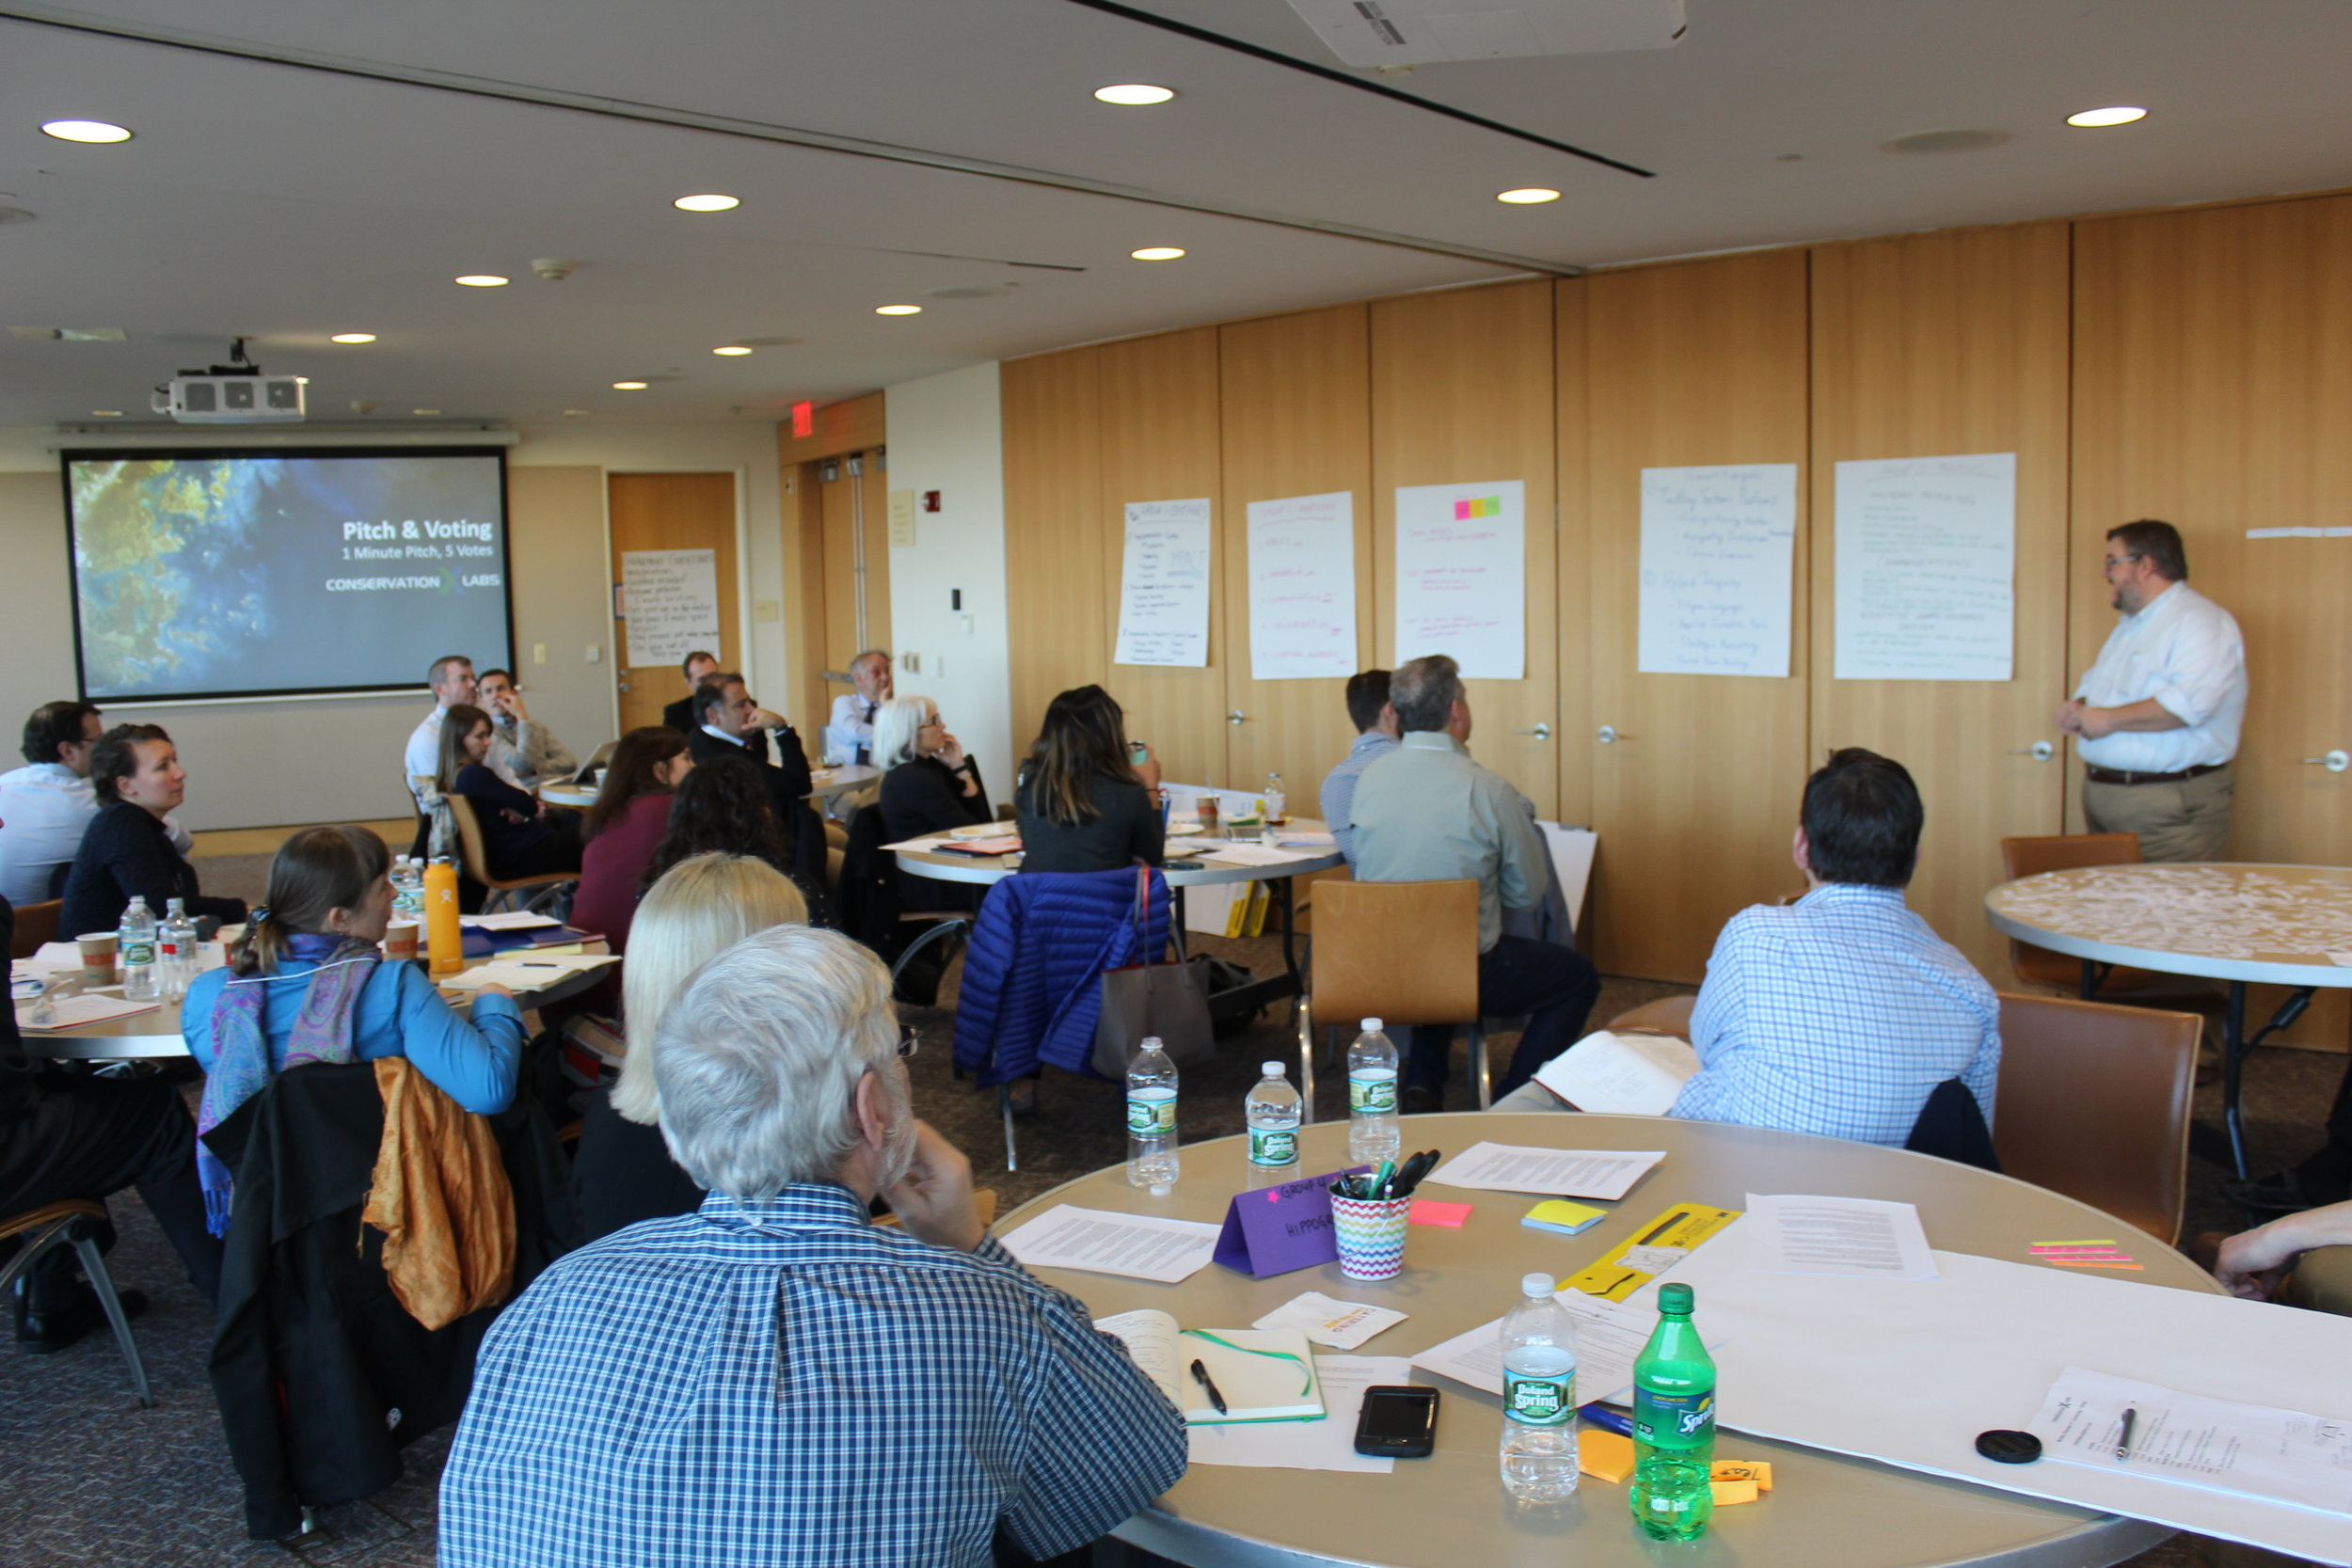 Faculty pitch their group's conservation curriculum core following inter-institutional exchange.